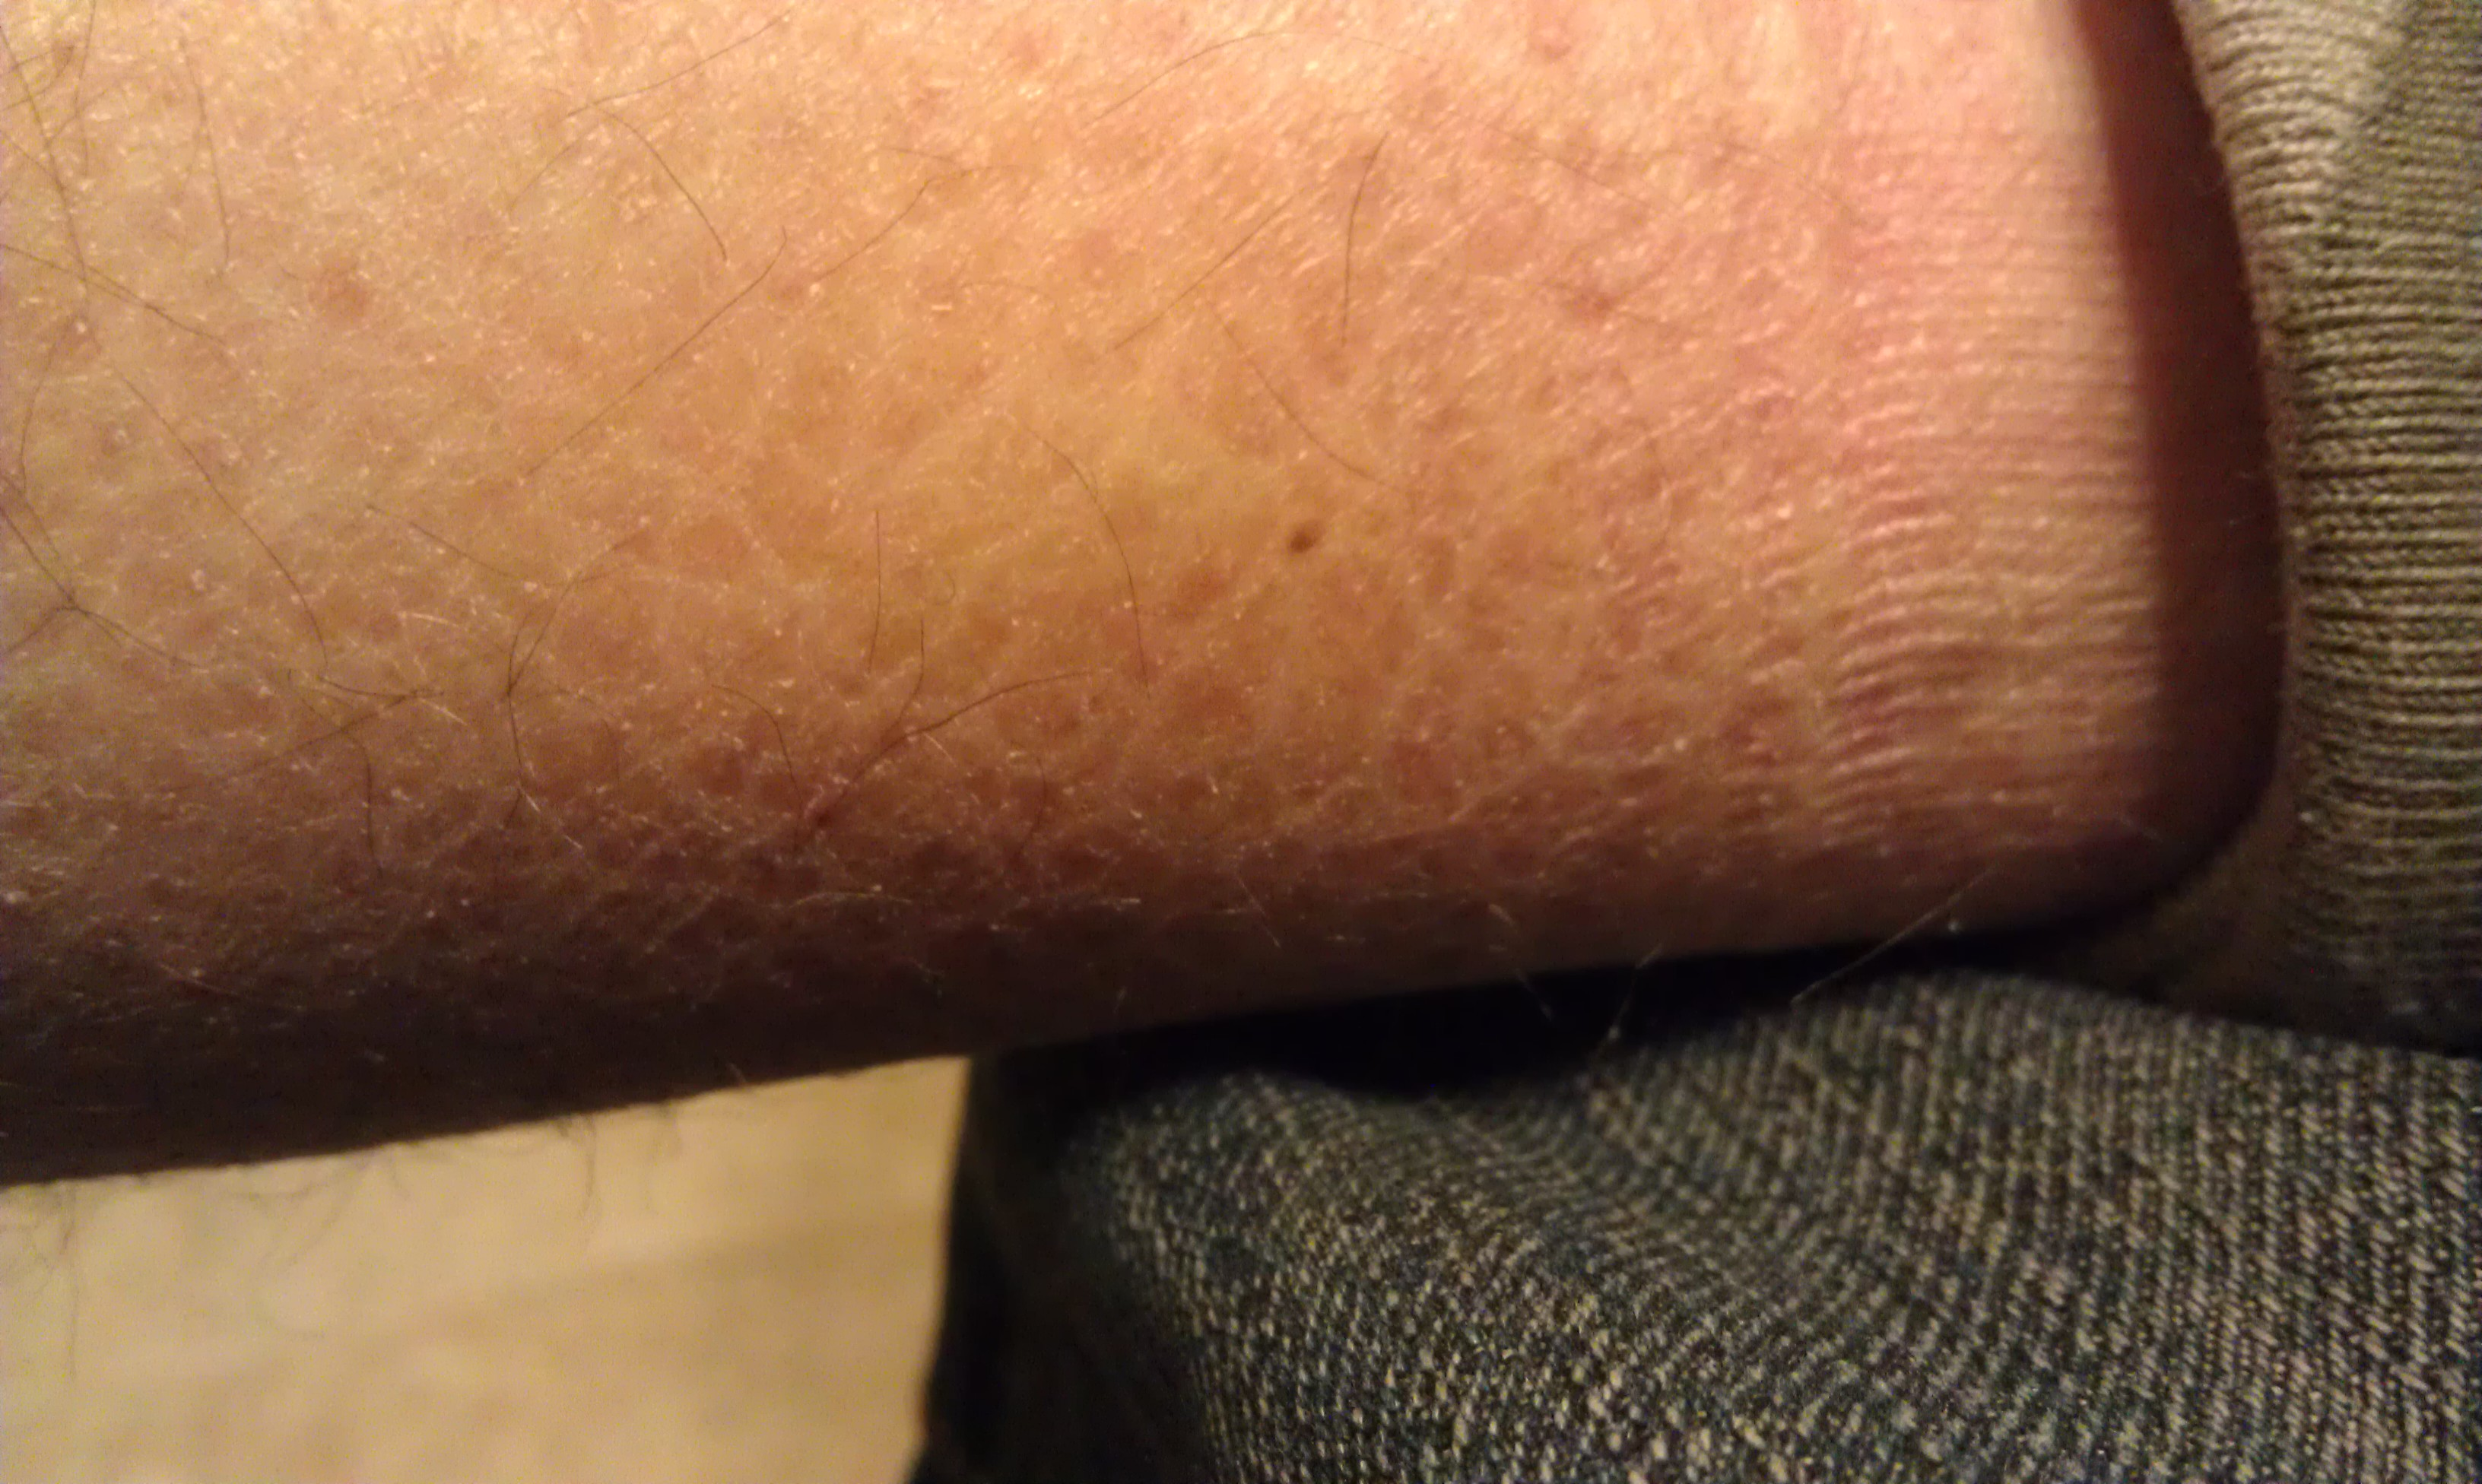 Dry Scaly Spots On Leg